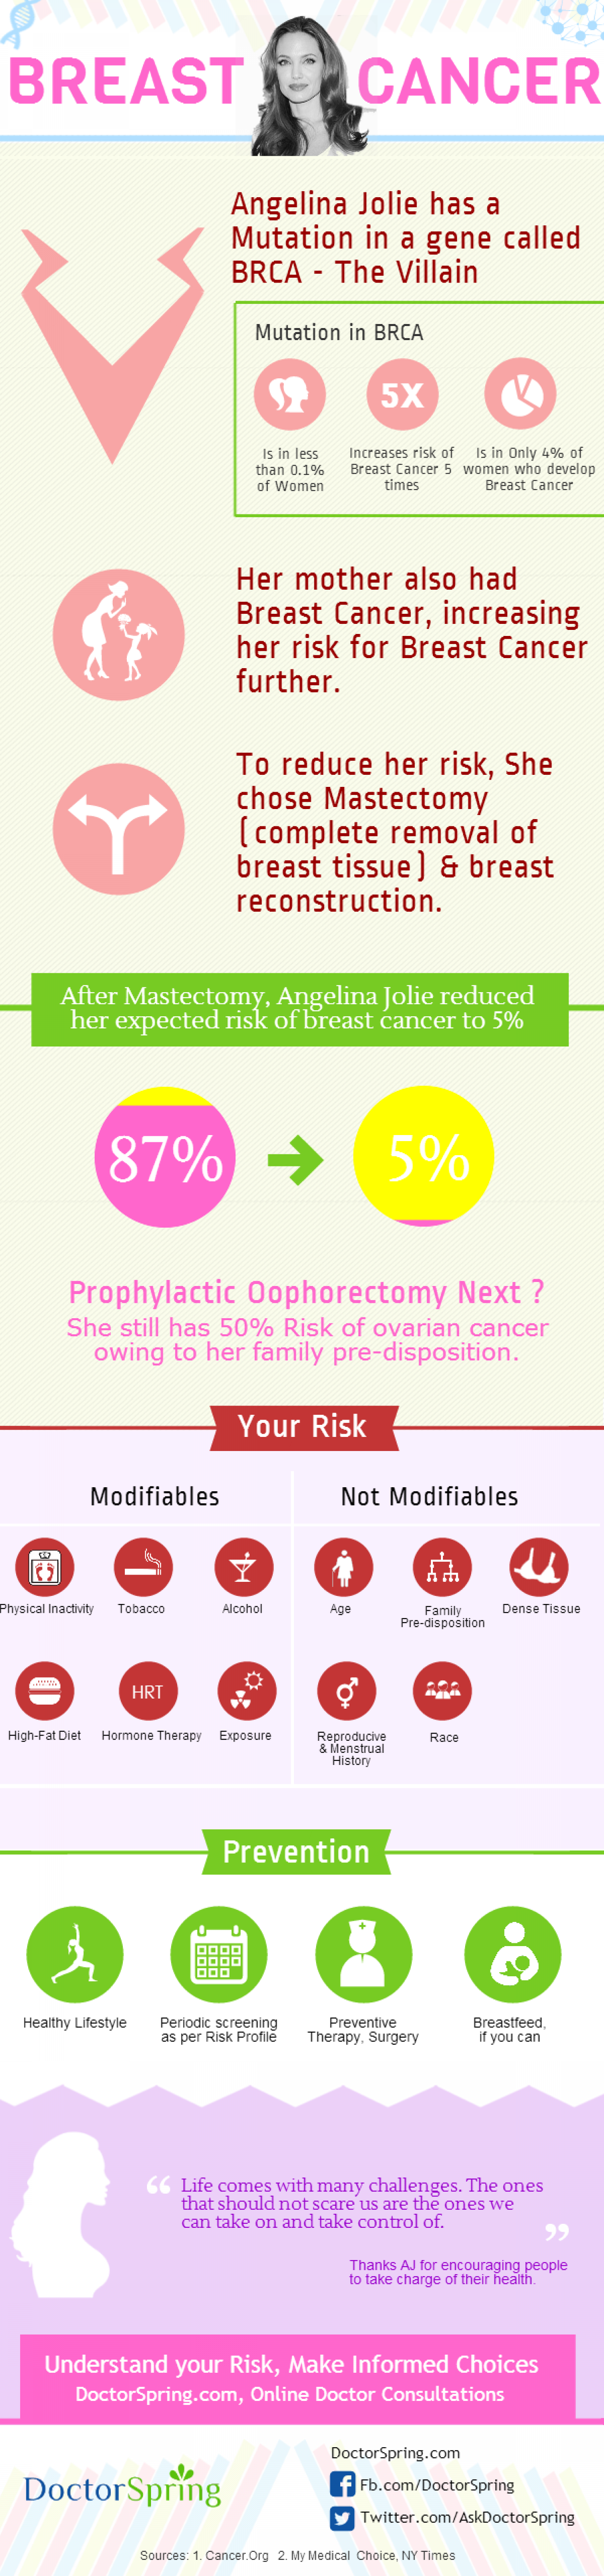 What you need to know about Anjelina's Breast Cancer story Infographic